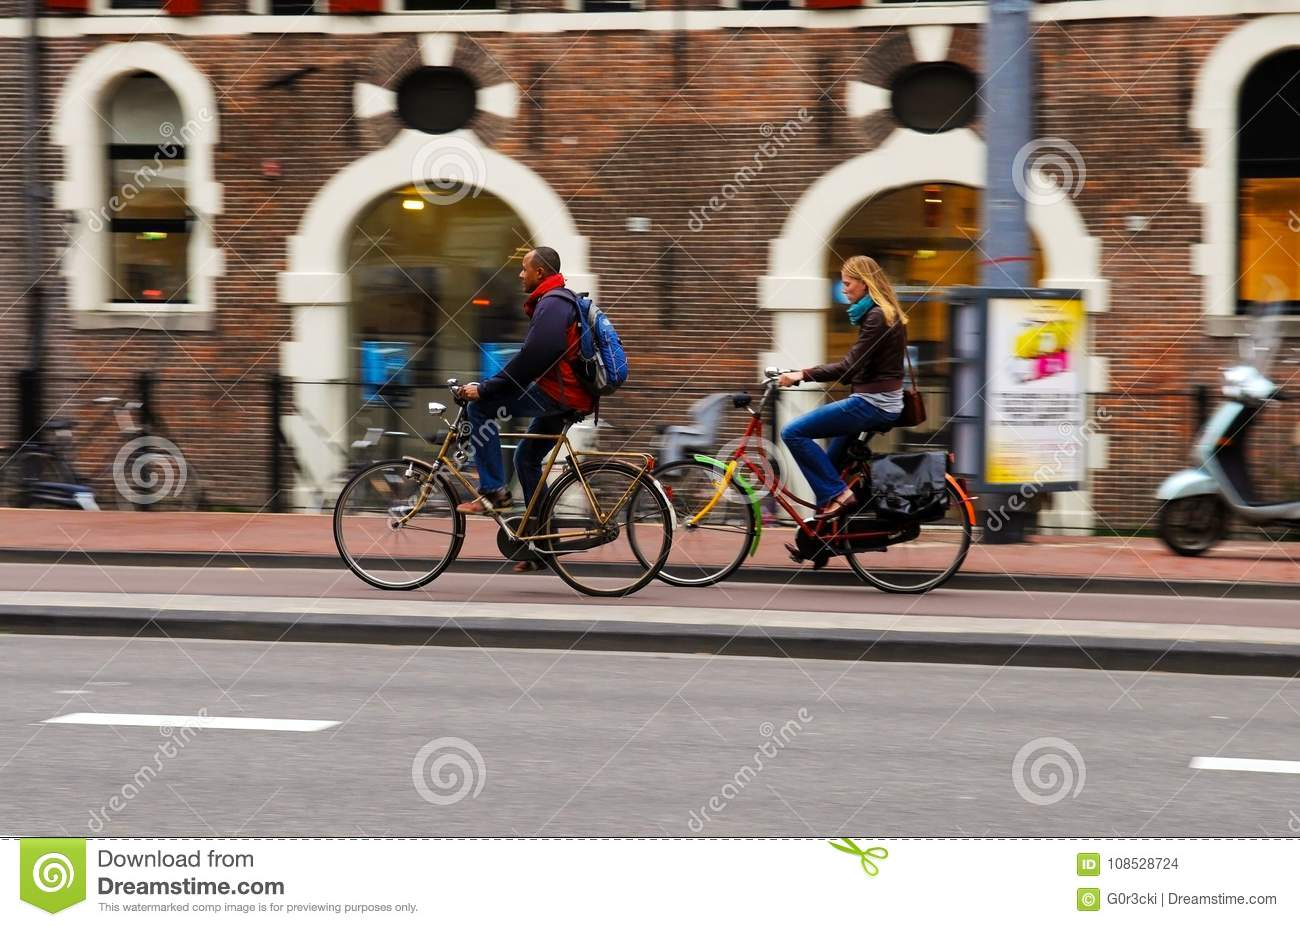 Nordic Outdoor Lifestyle, Focus Continuous Effect - Blonde Young Woman and Black Man Riding Bikes